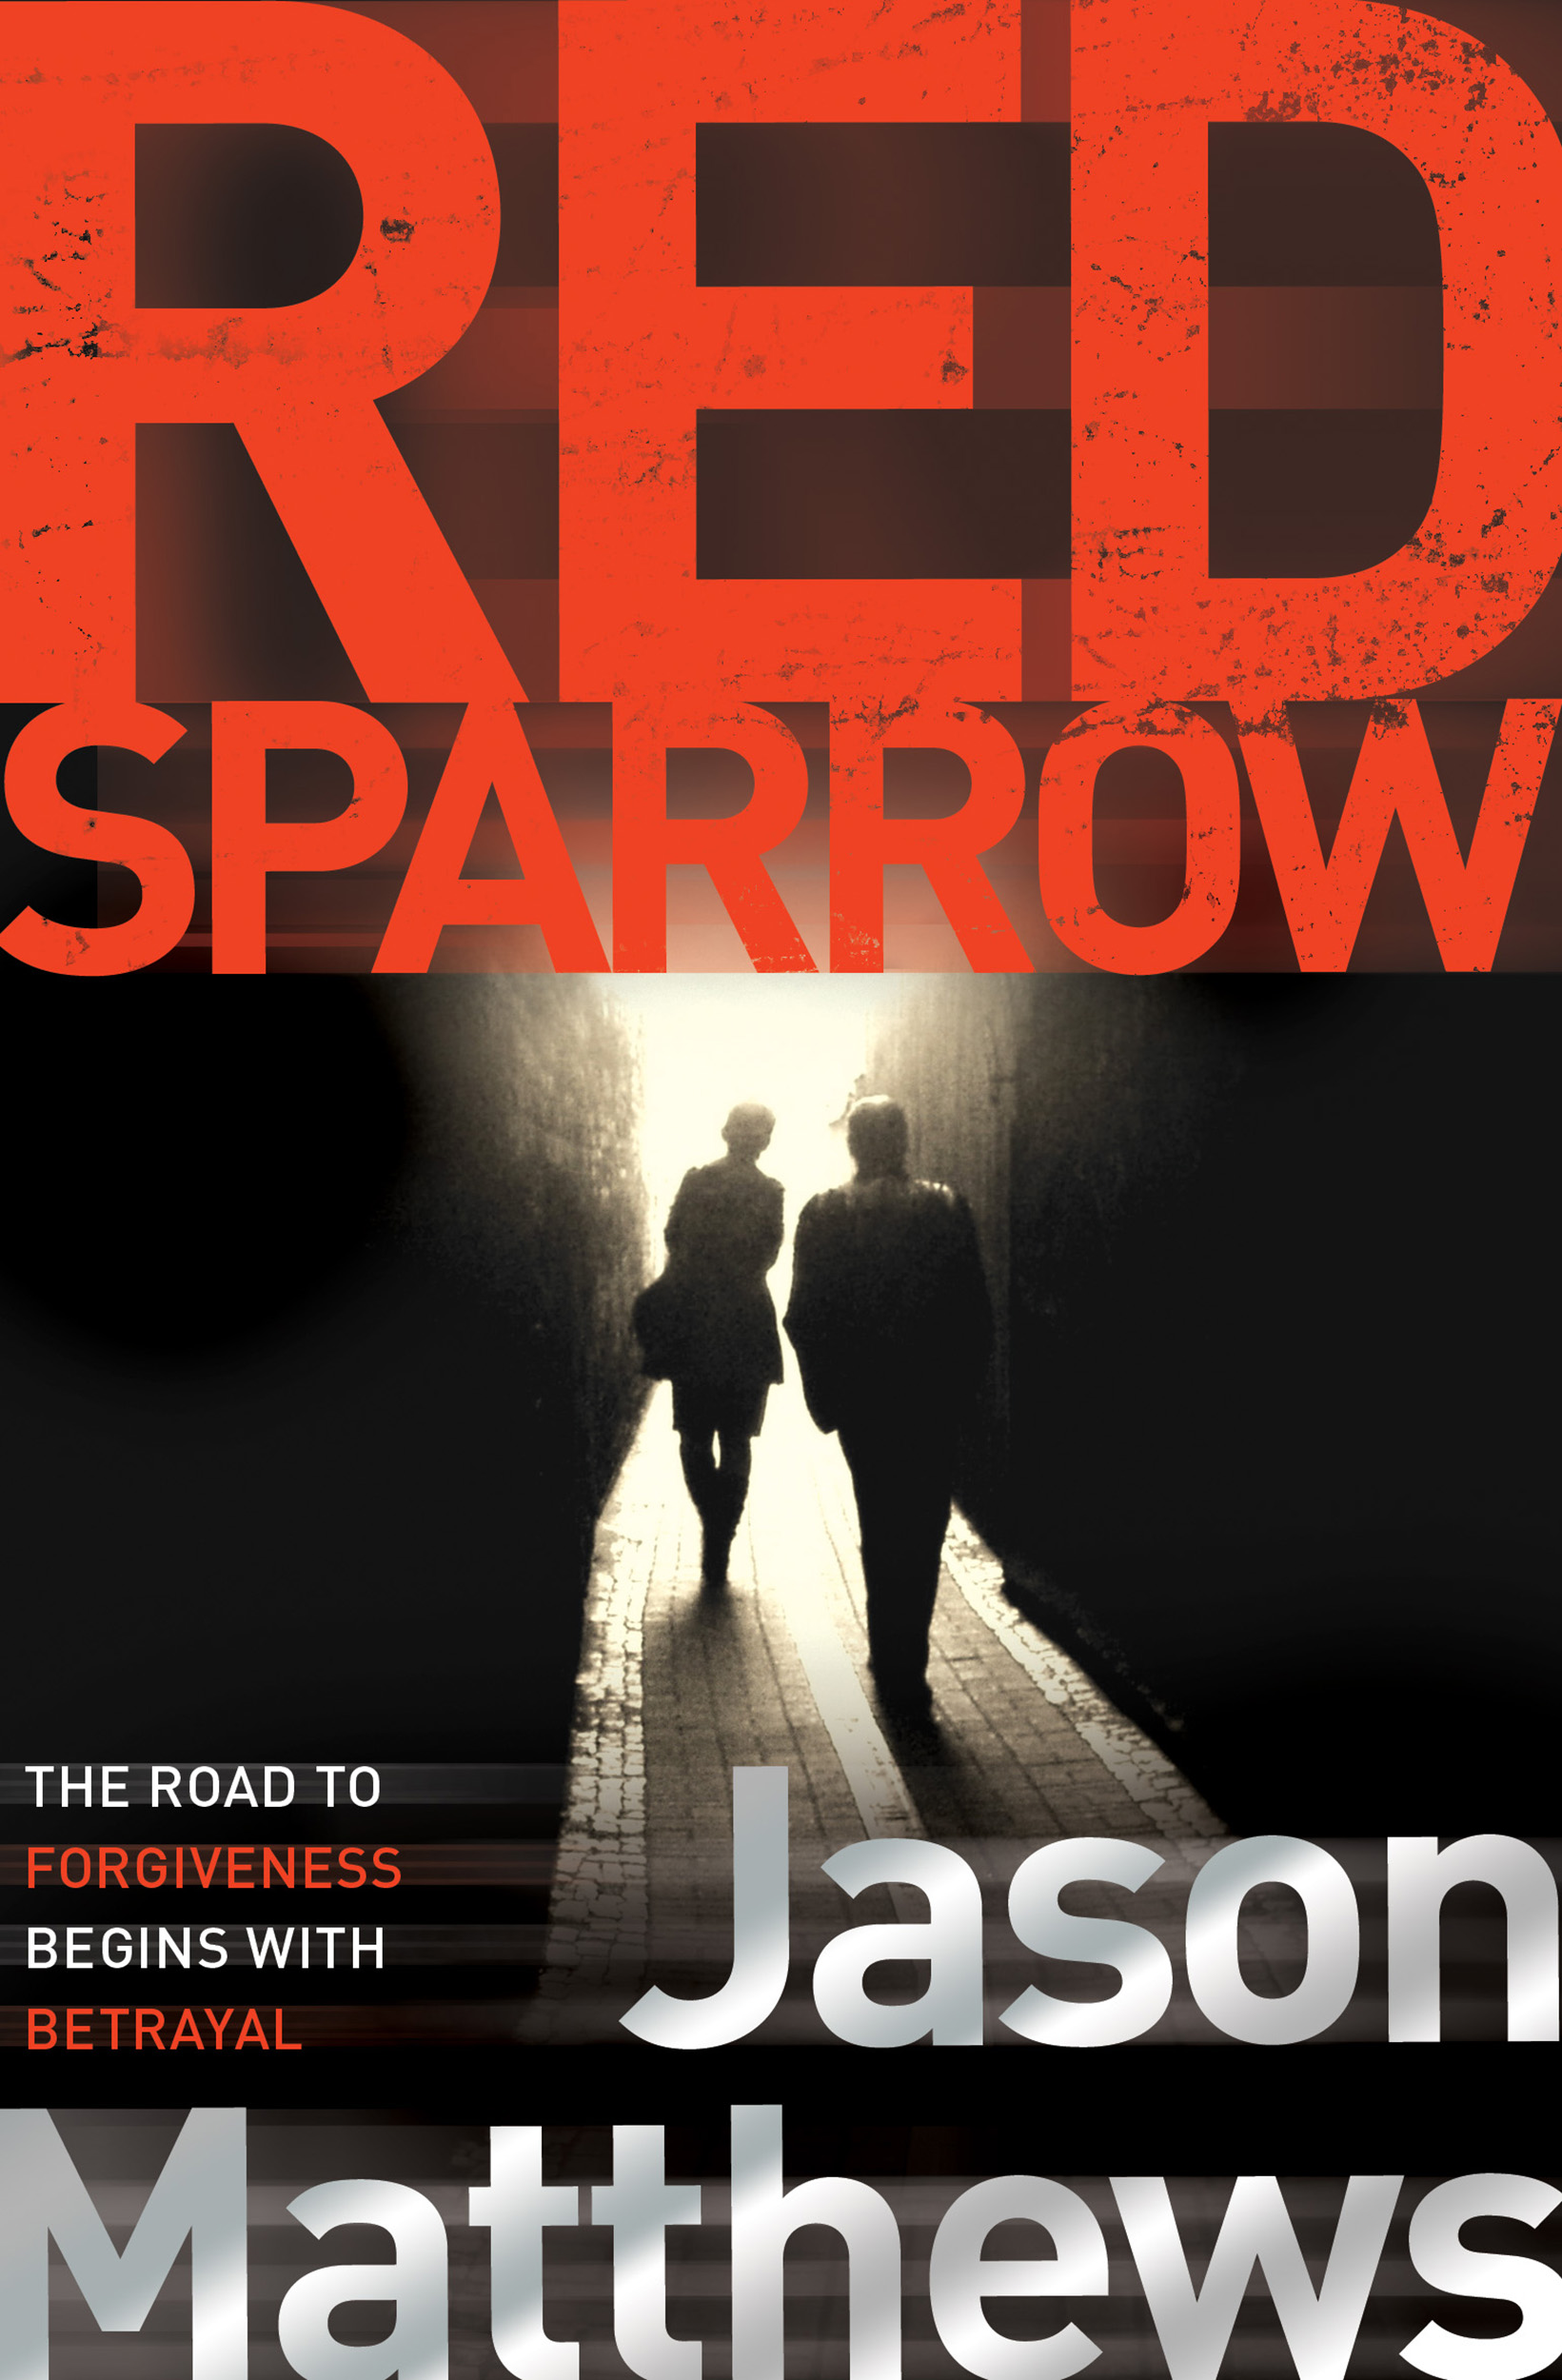 Red sparrow 9781471112607 hr